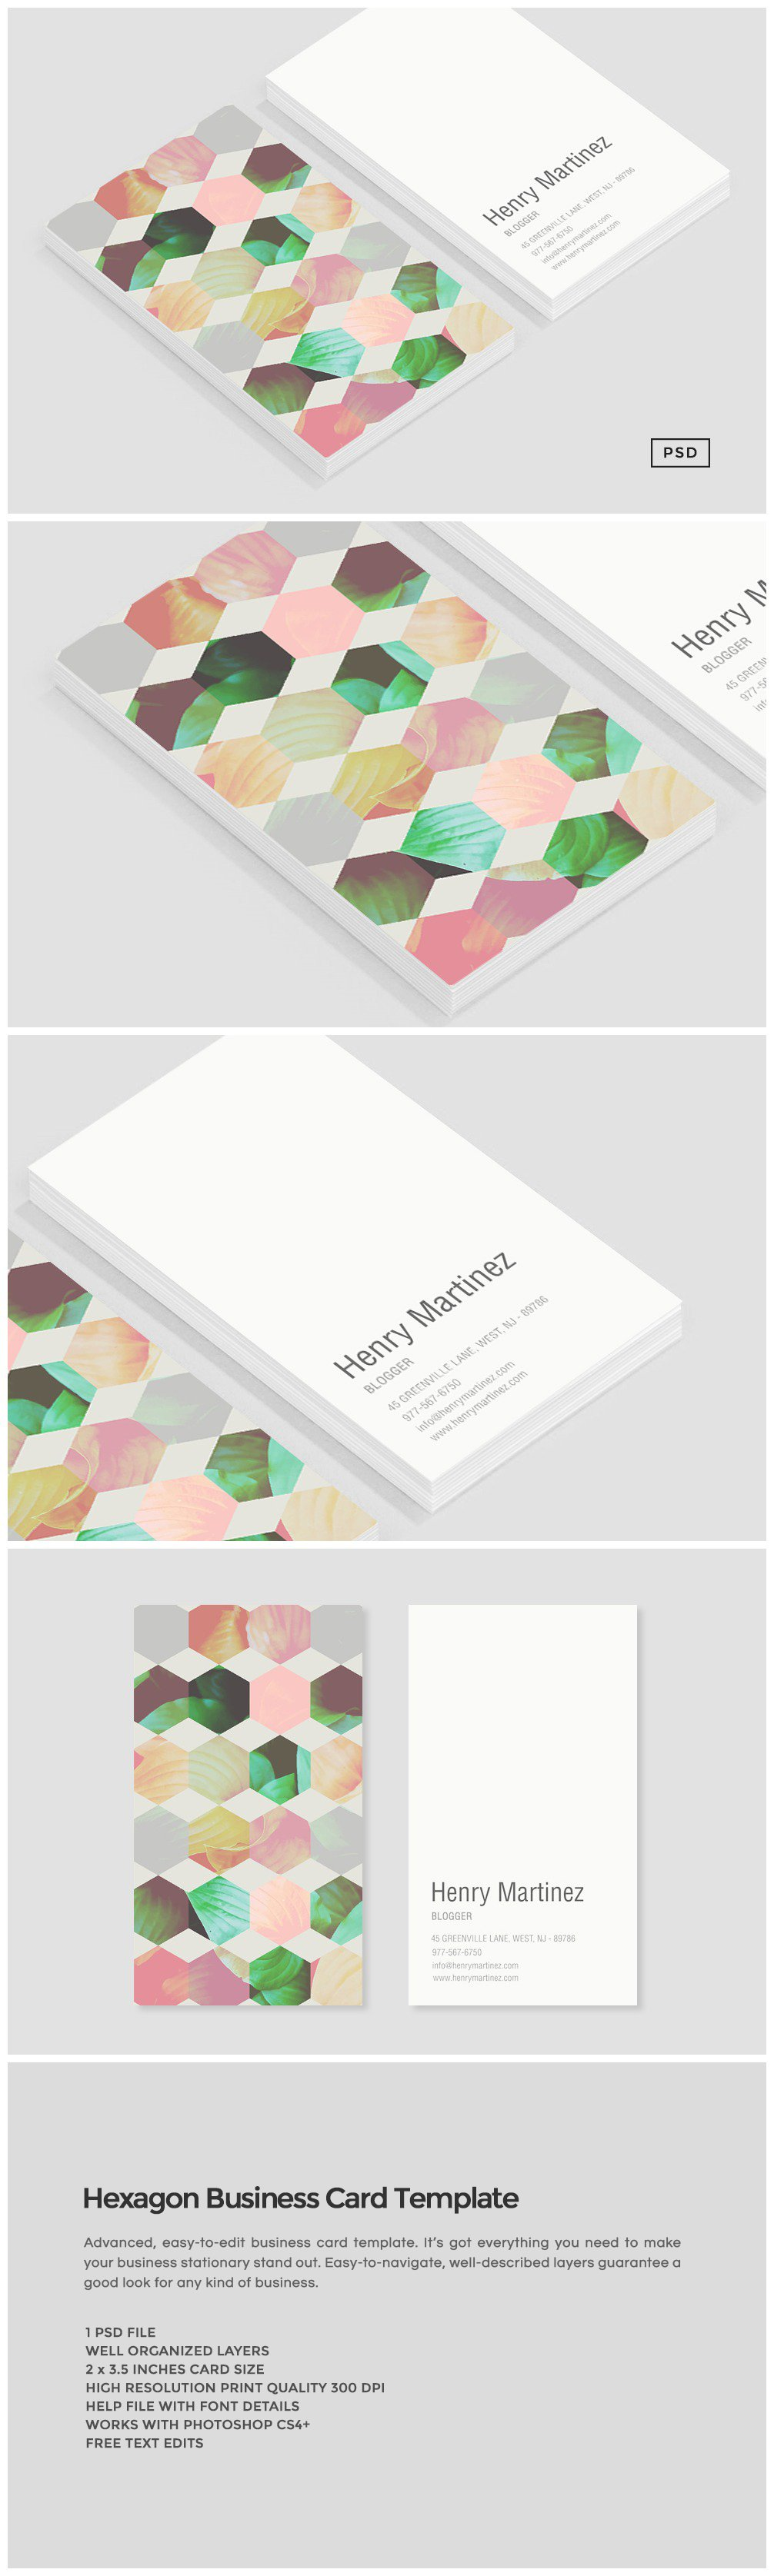 hexagon business card template business card templates creative